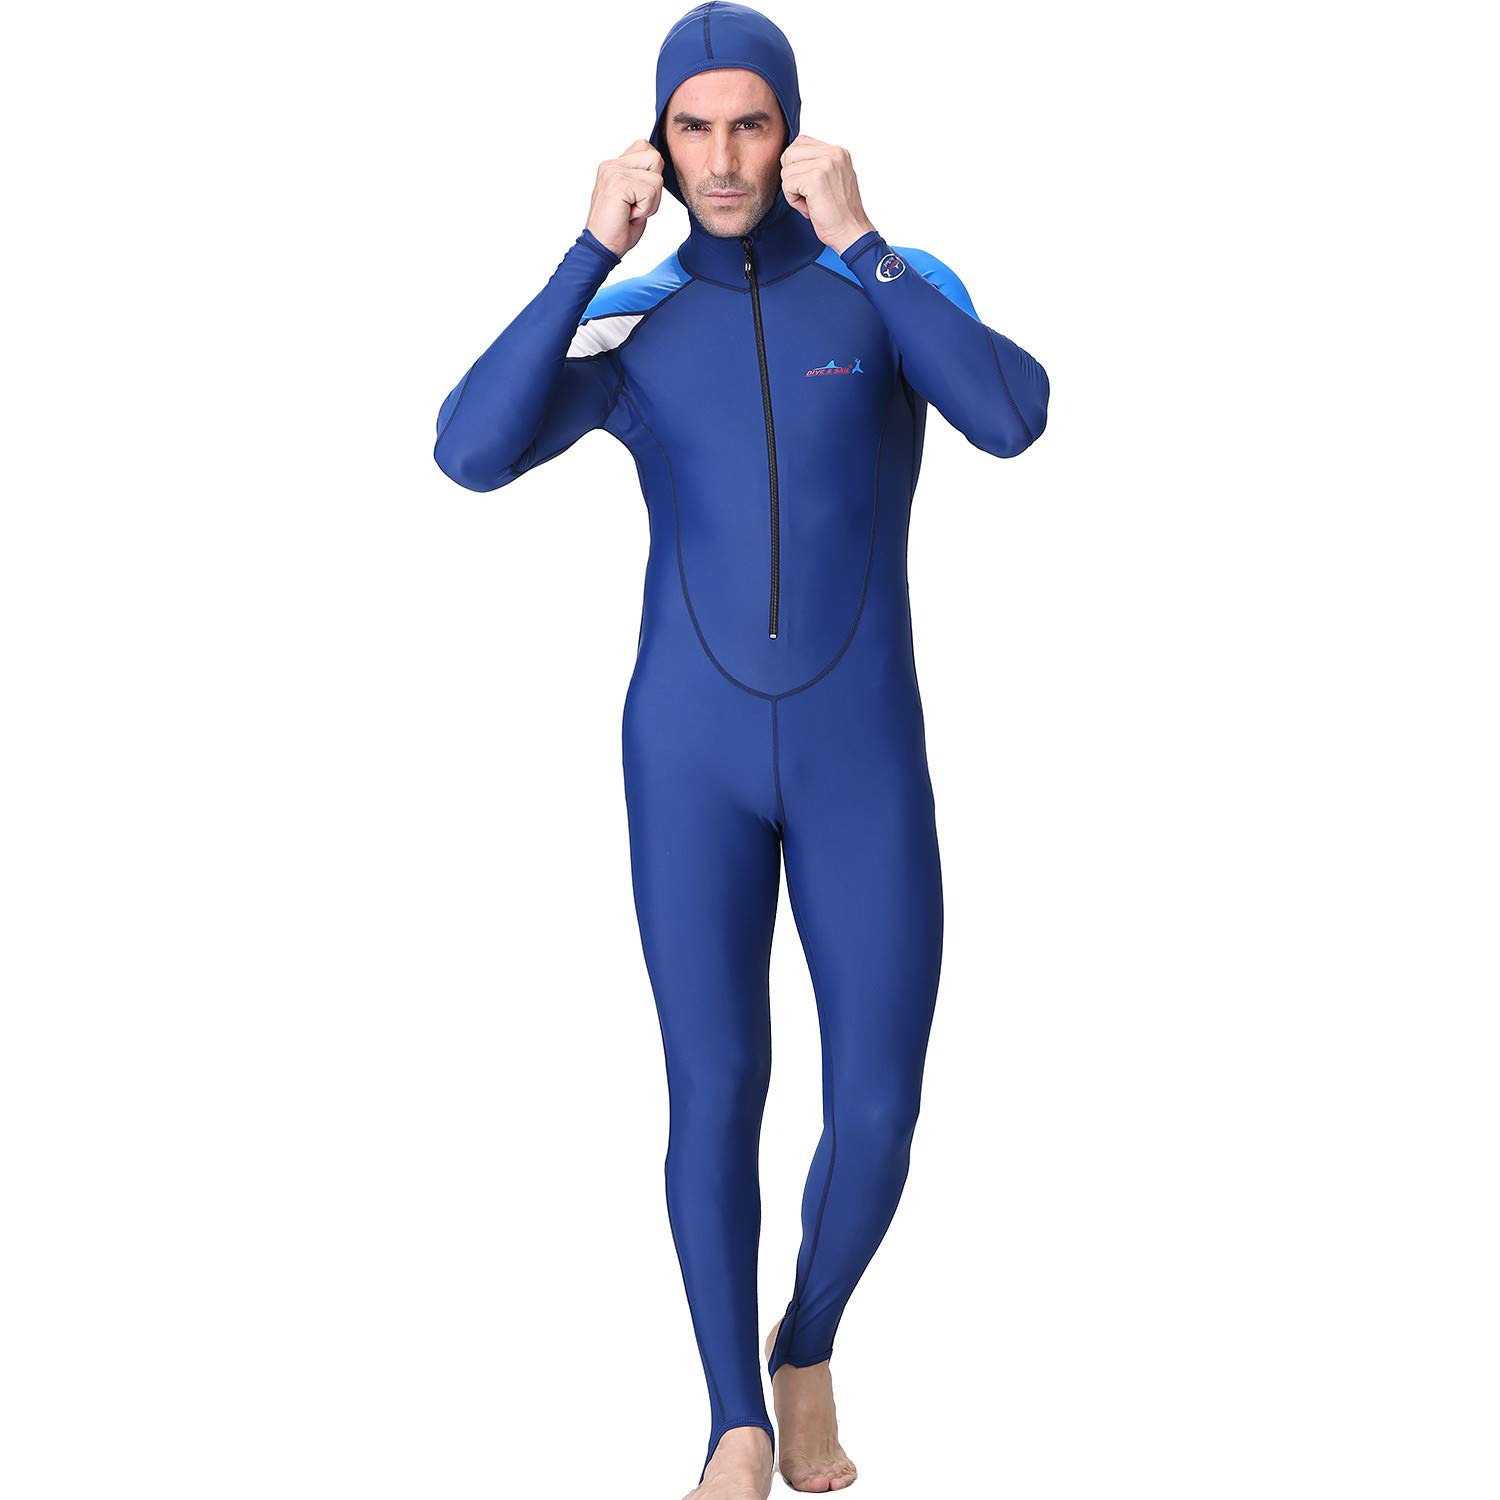 iCJJL Mens Long Sleeve Front Zip Hooded Wetsuit for Surfing, One Piece Triathlon Scuba Diving Spearfishing Surfing Snorkeling Stretch Diving Suit Swimsuit Jumpsuit by iCJJL